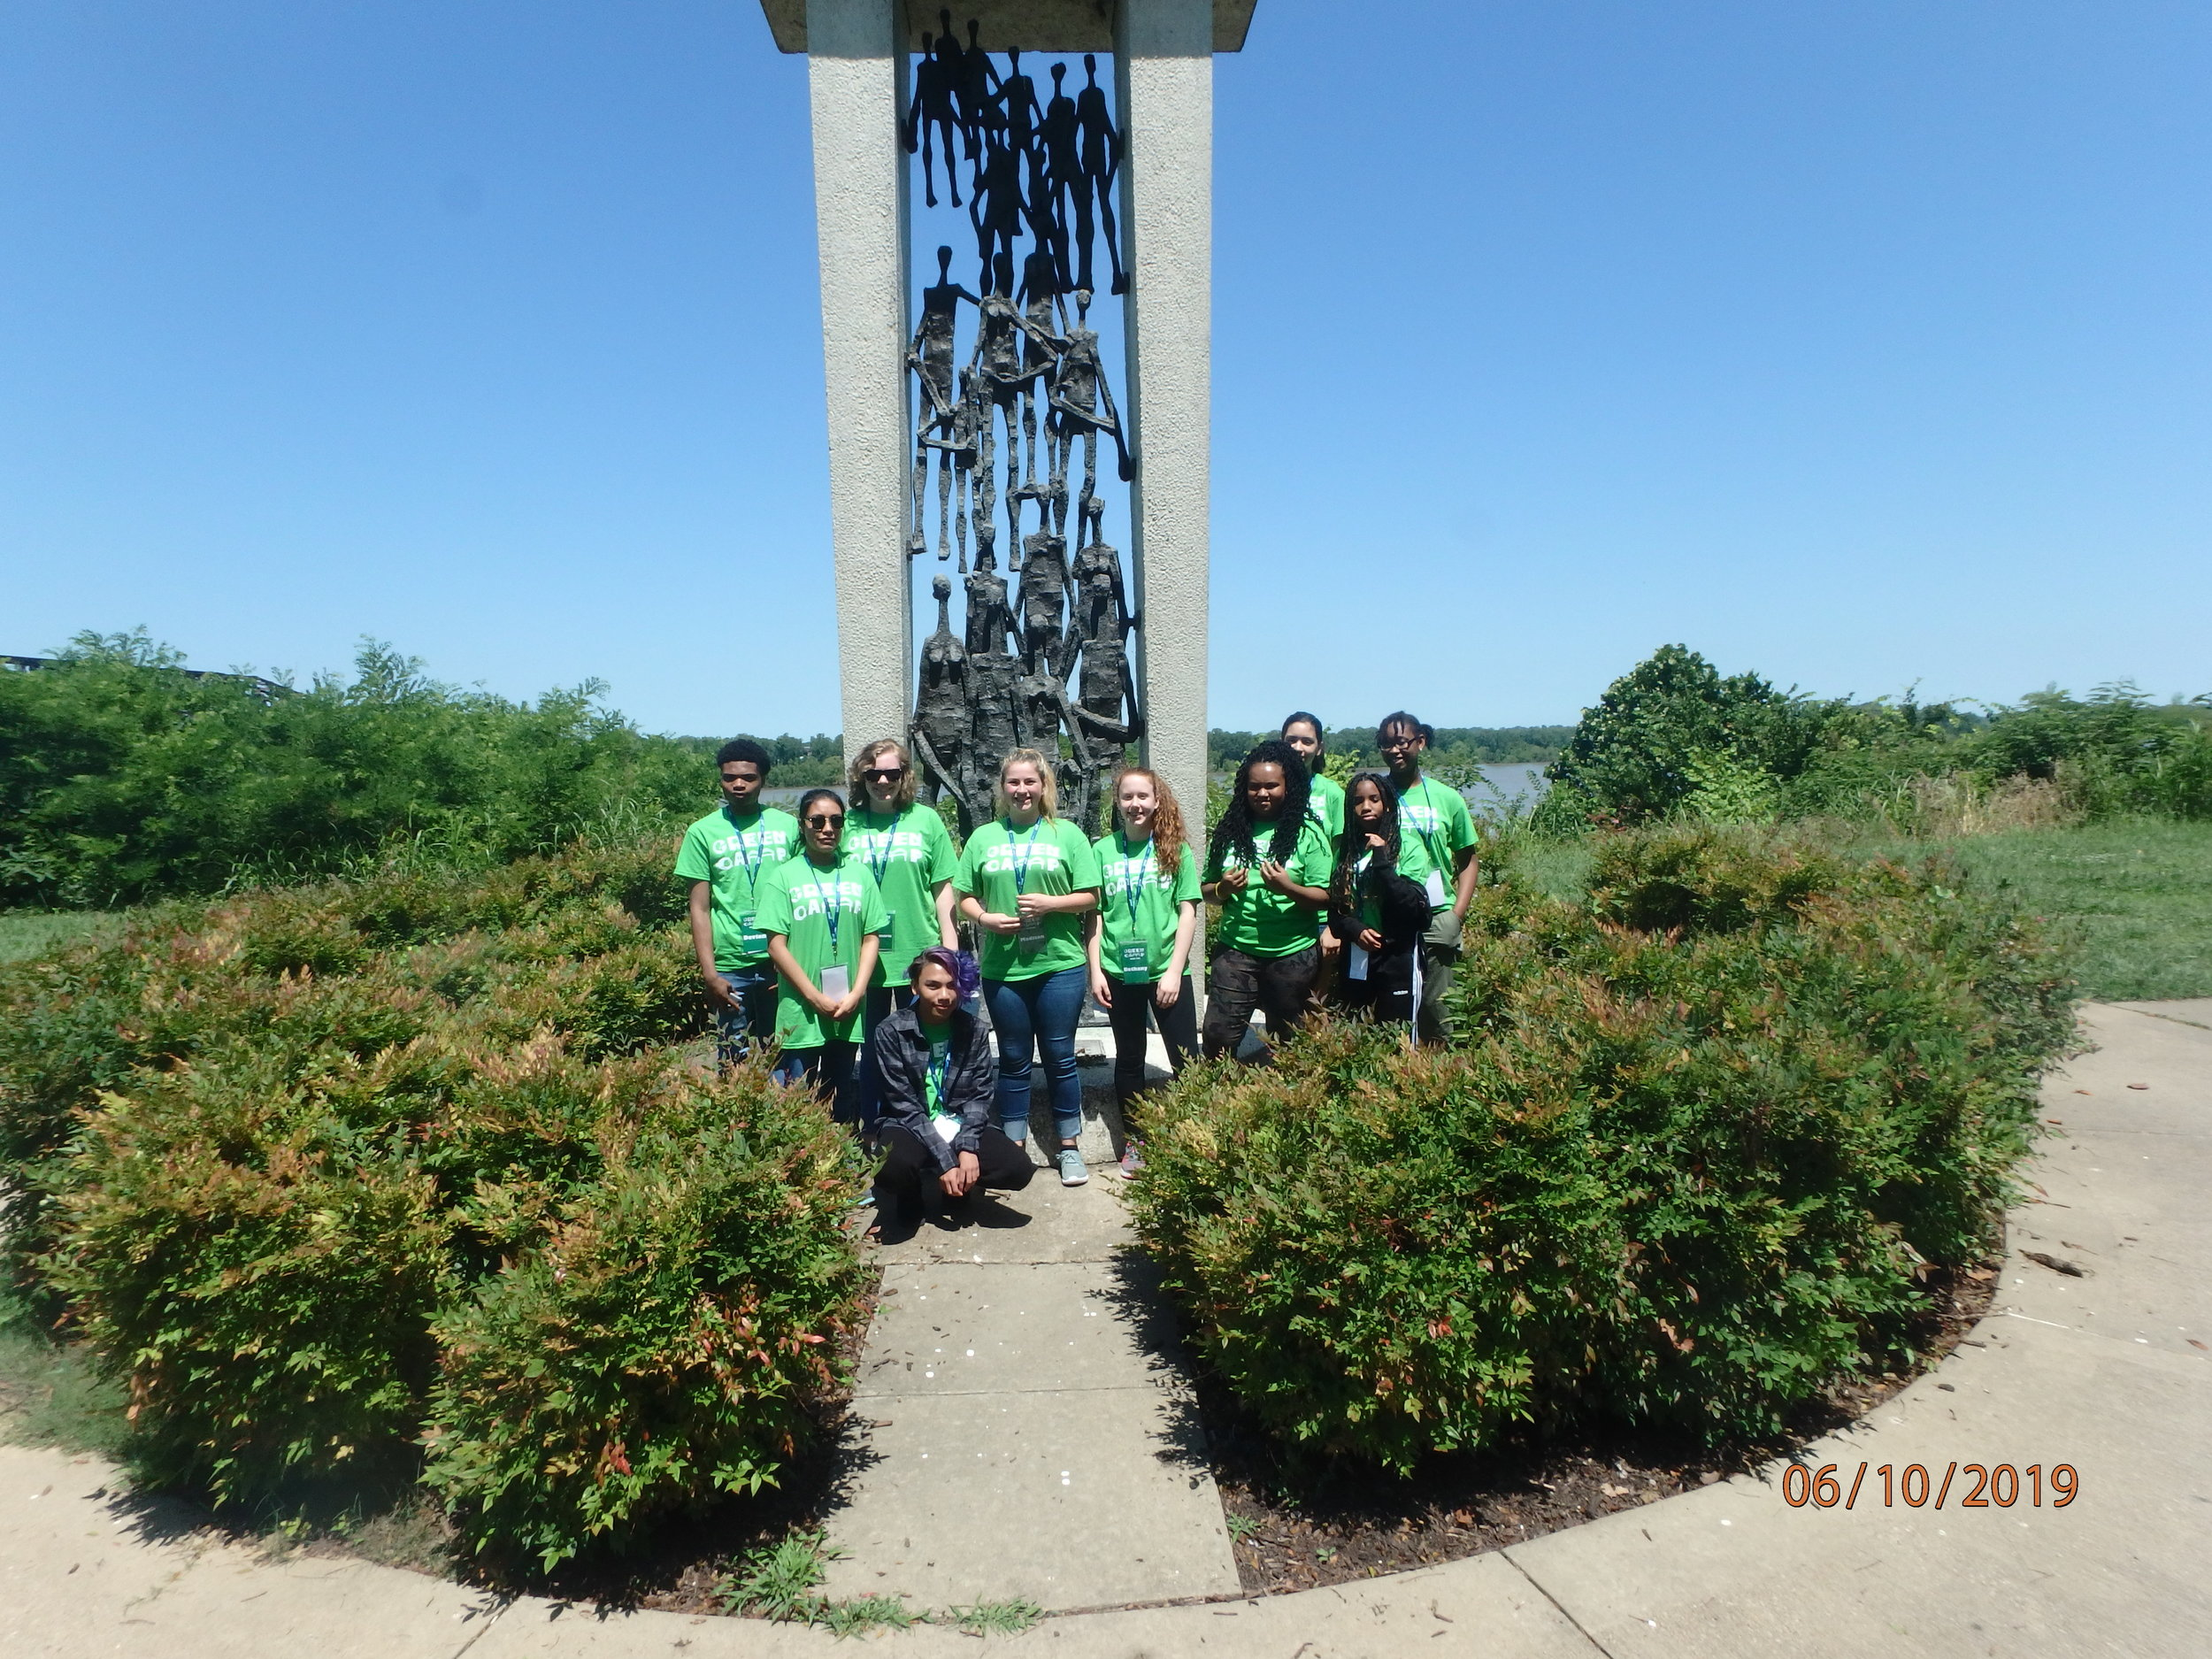 Day 1: Martyr Park, Memphis and MS4 history